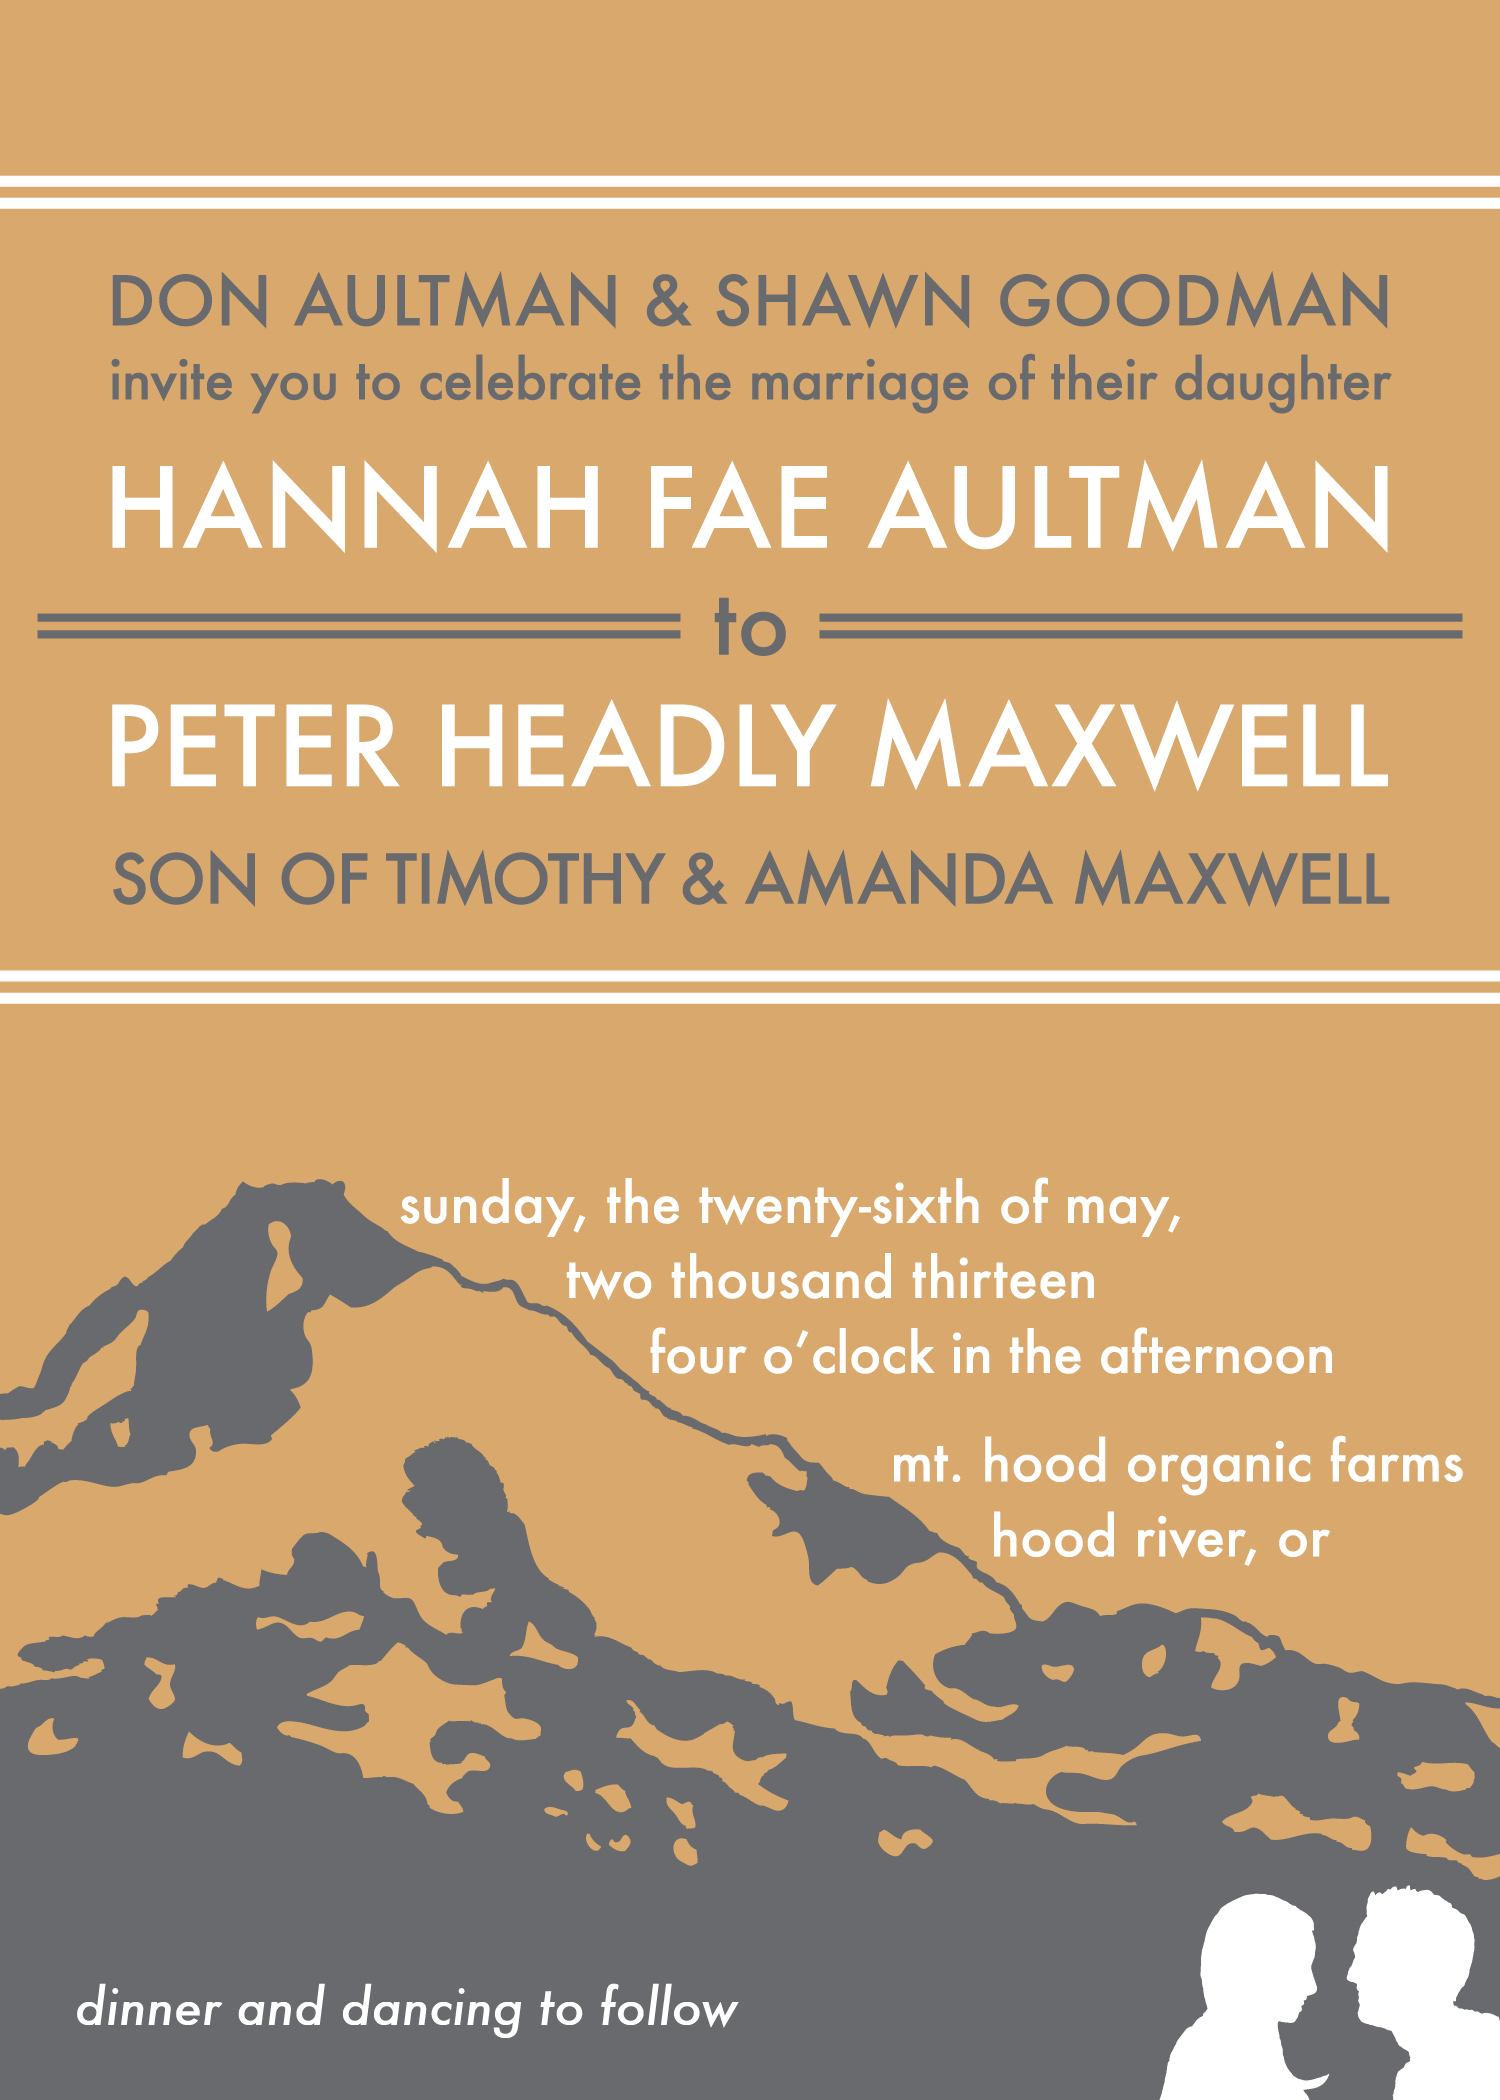 Aultman-Maxwell Wedding, Invitation